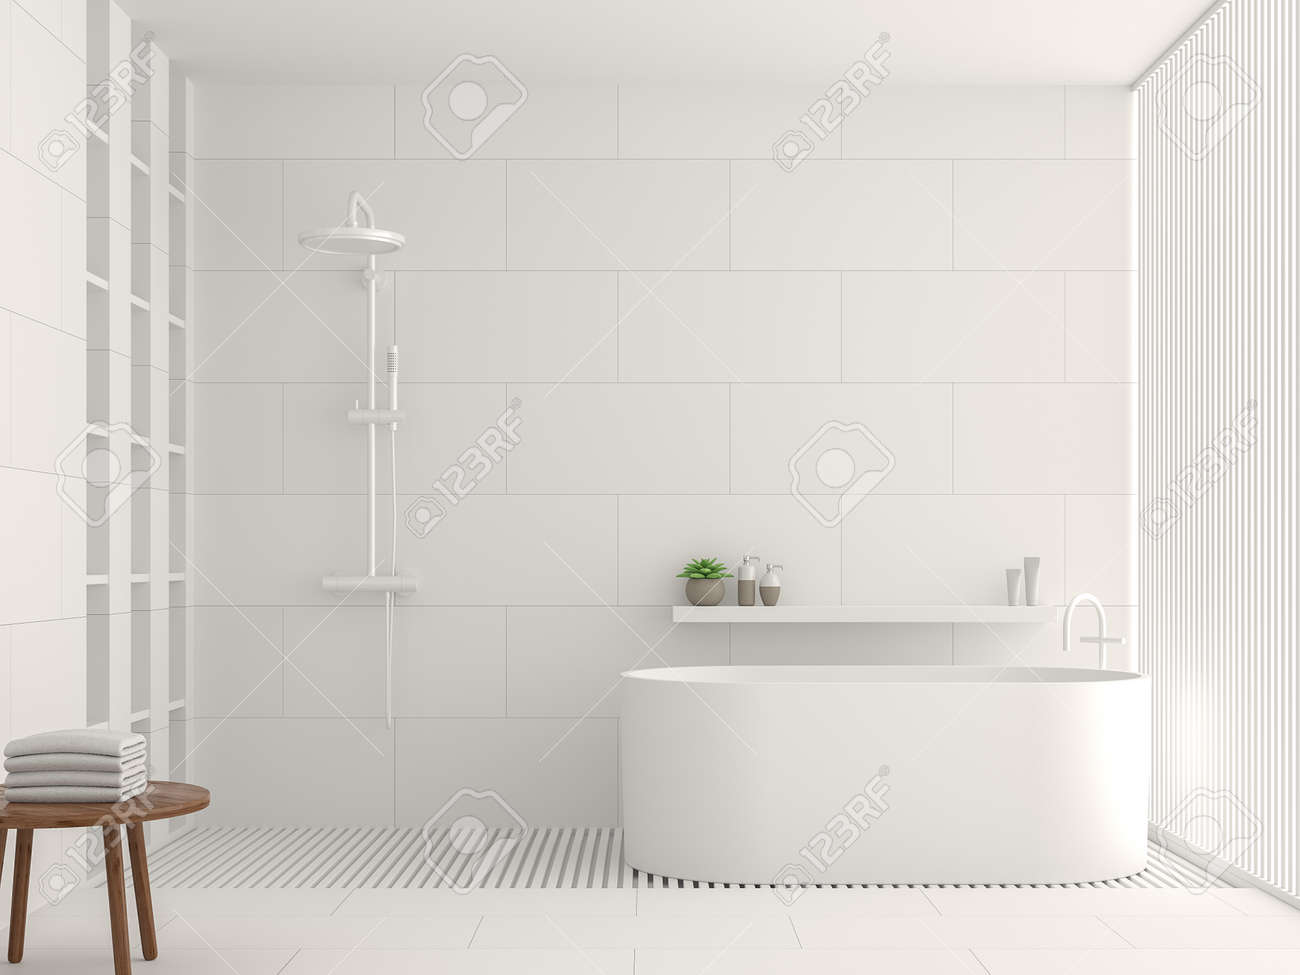 Modern White Bathroom Interior 3d Rendering Image. There Are.. Stock ...